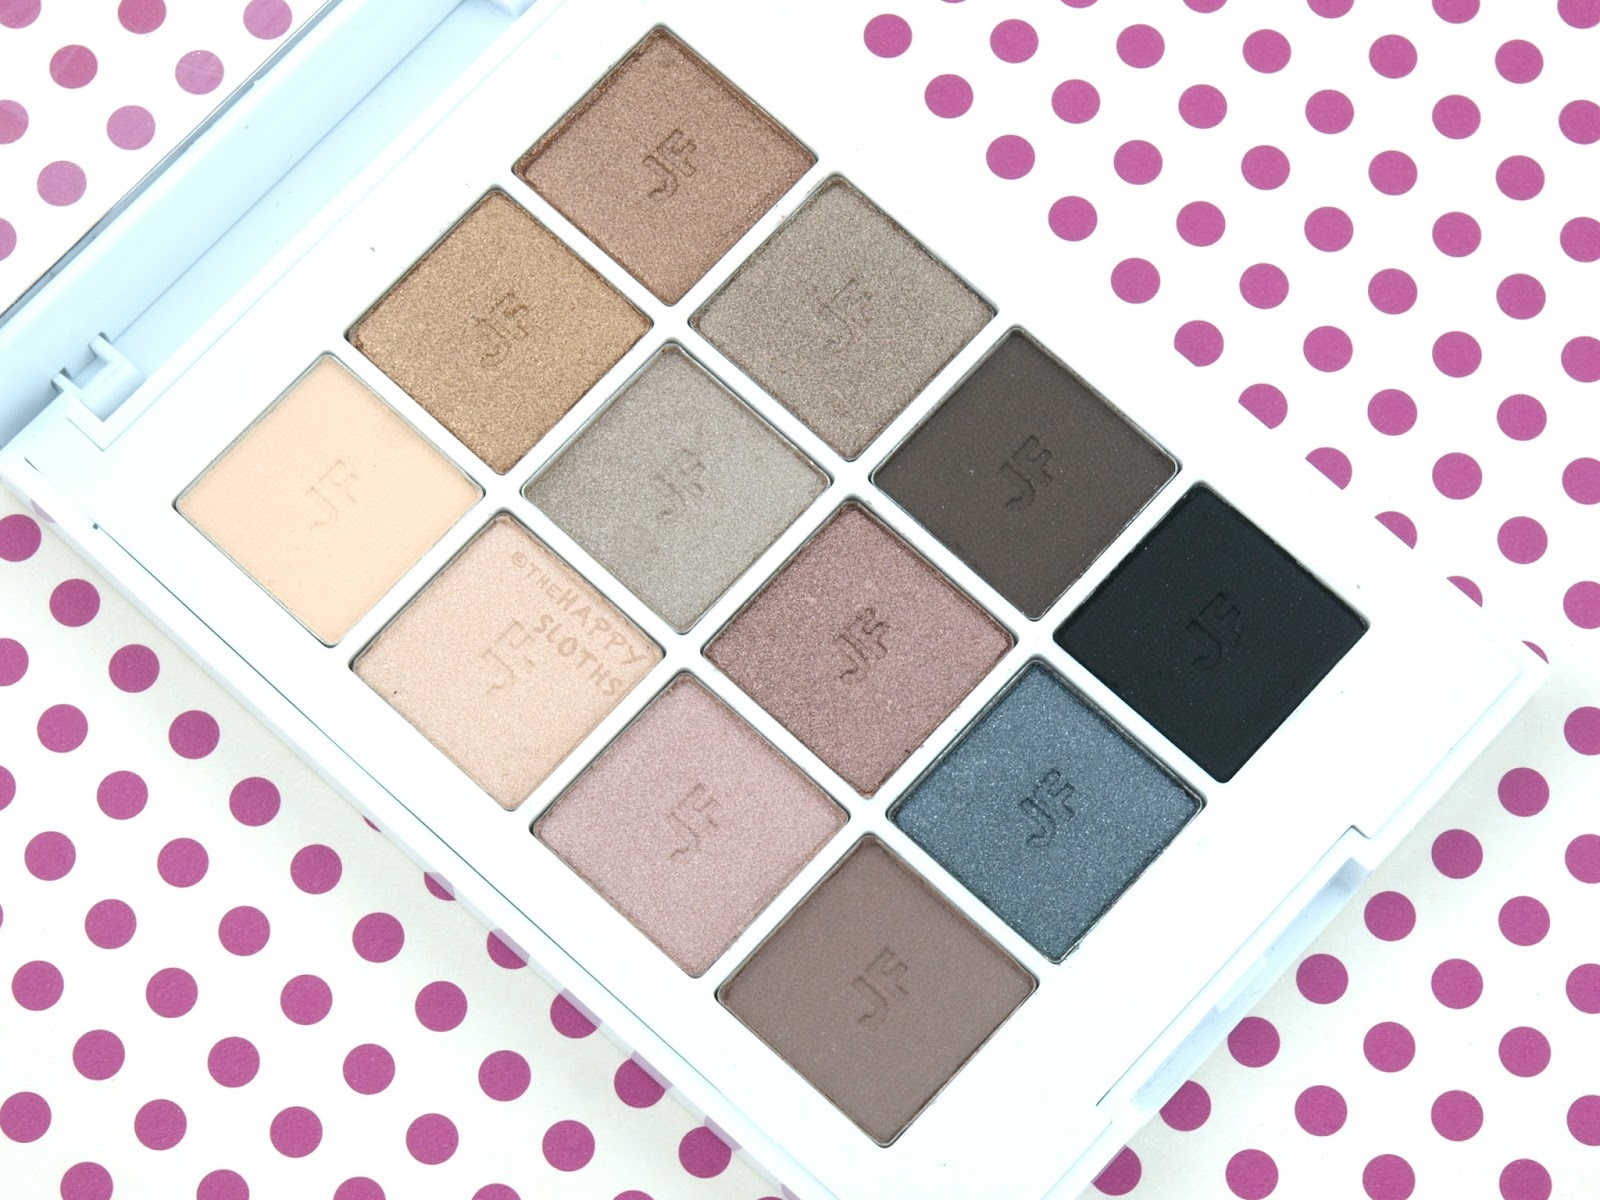 Beauty Essentials Beauty & Health Painstaking Hot Fashion Novelty New 5 Color Professional Eyes Glitter Makeup Pigment Eyeshadow Eye Shadow Palette Water-resistant Brighten Various Styles